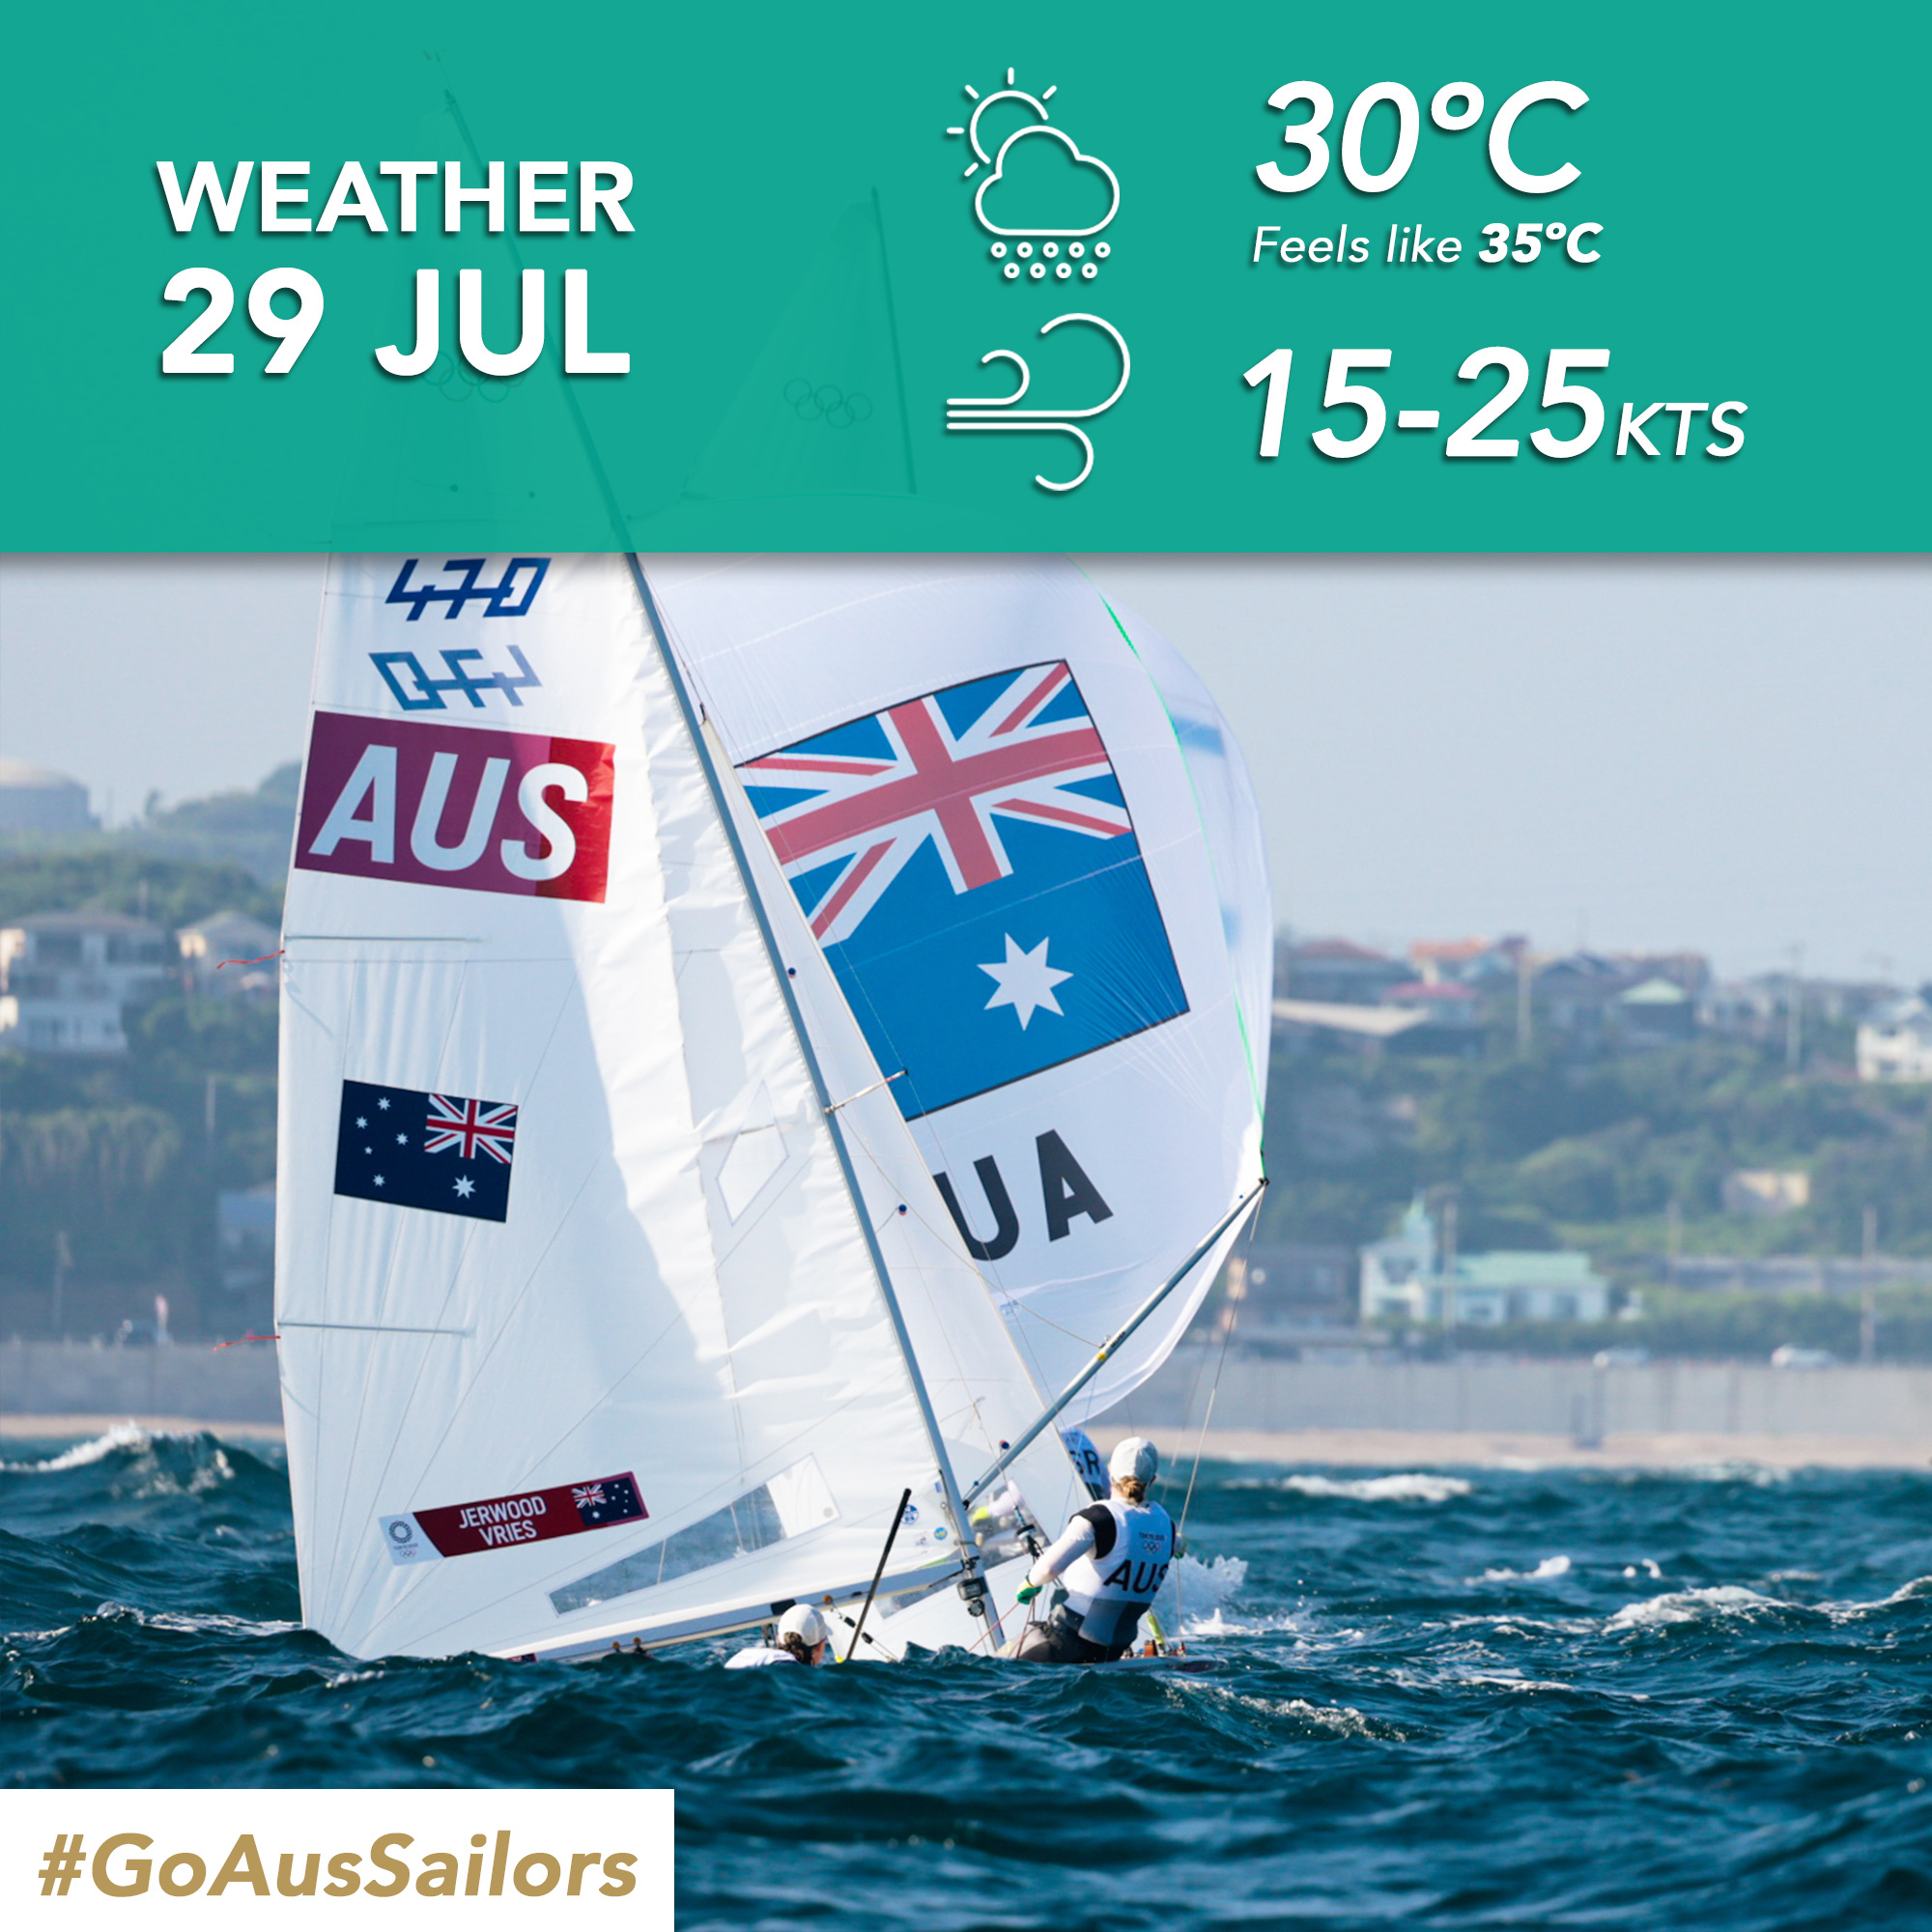 12-20 knots is forecasted on day 5 of the sailing competition at Enoshima.